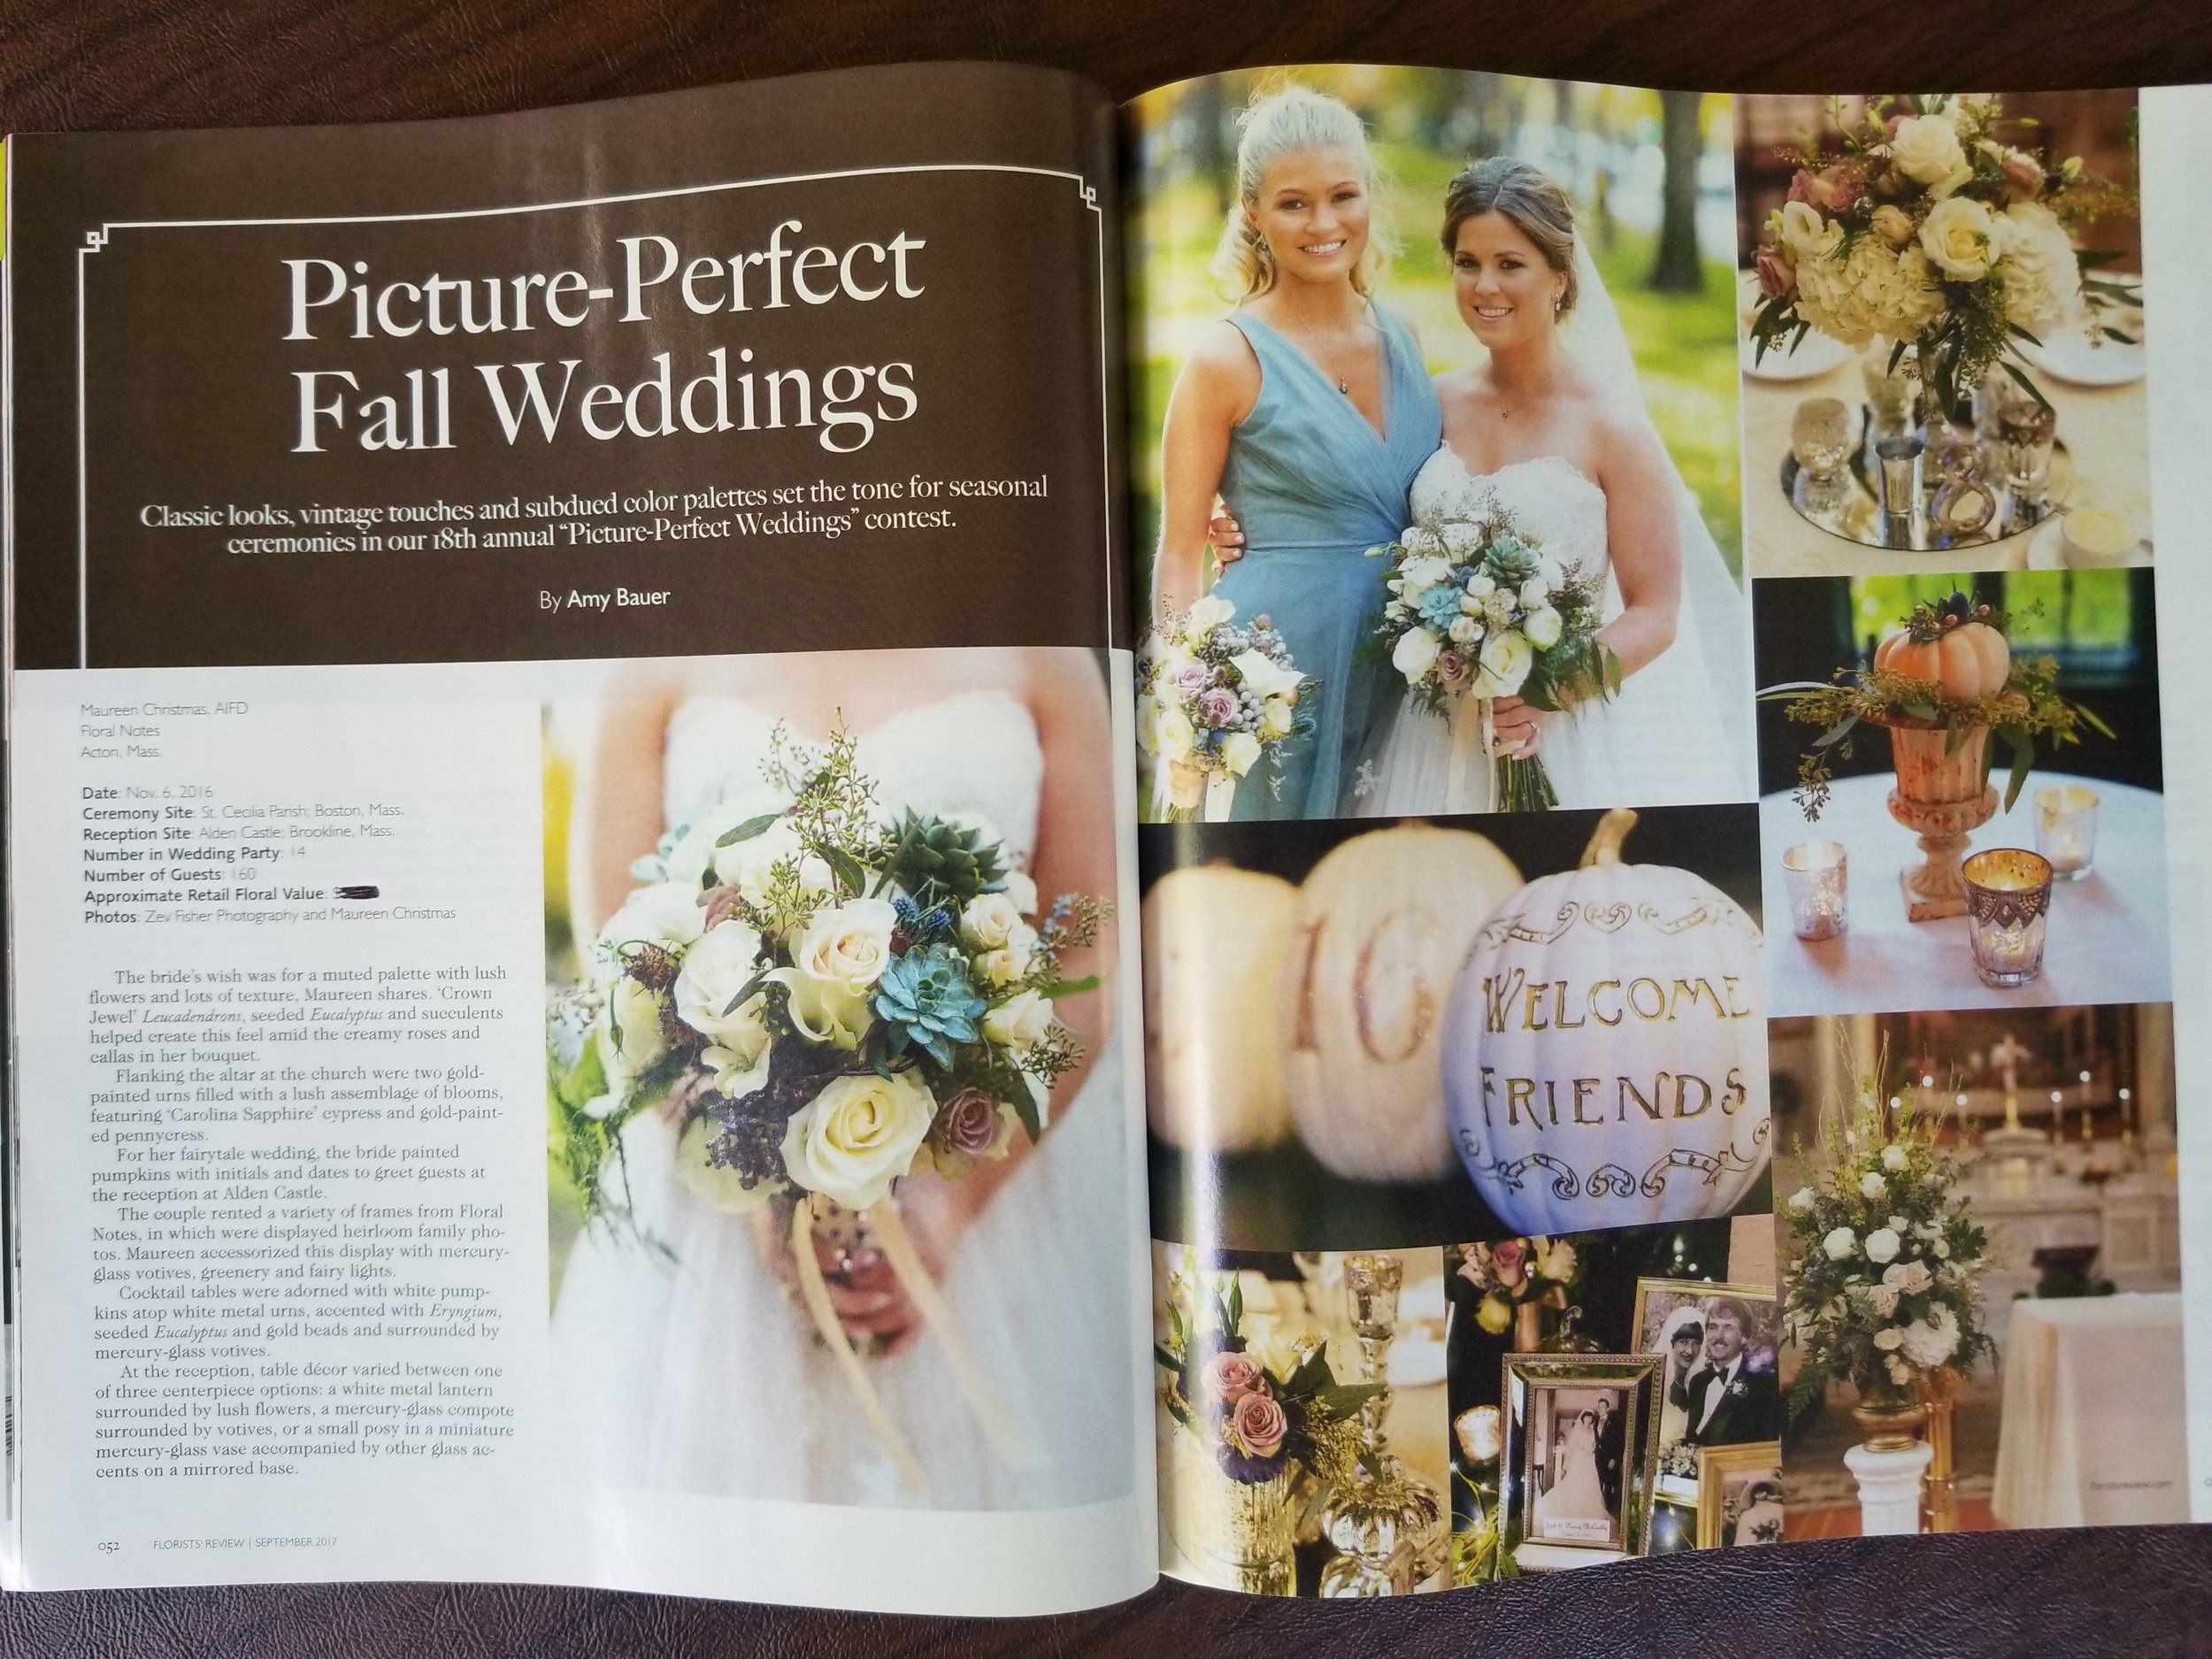 An honor to be the featured wedding in the fall edition of Florists' Review's Picture-Perfect Fall Weddings!